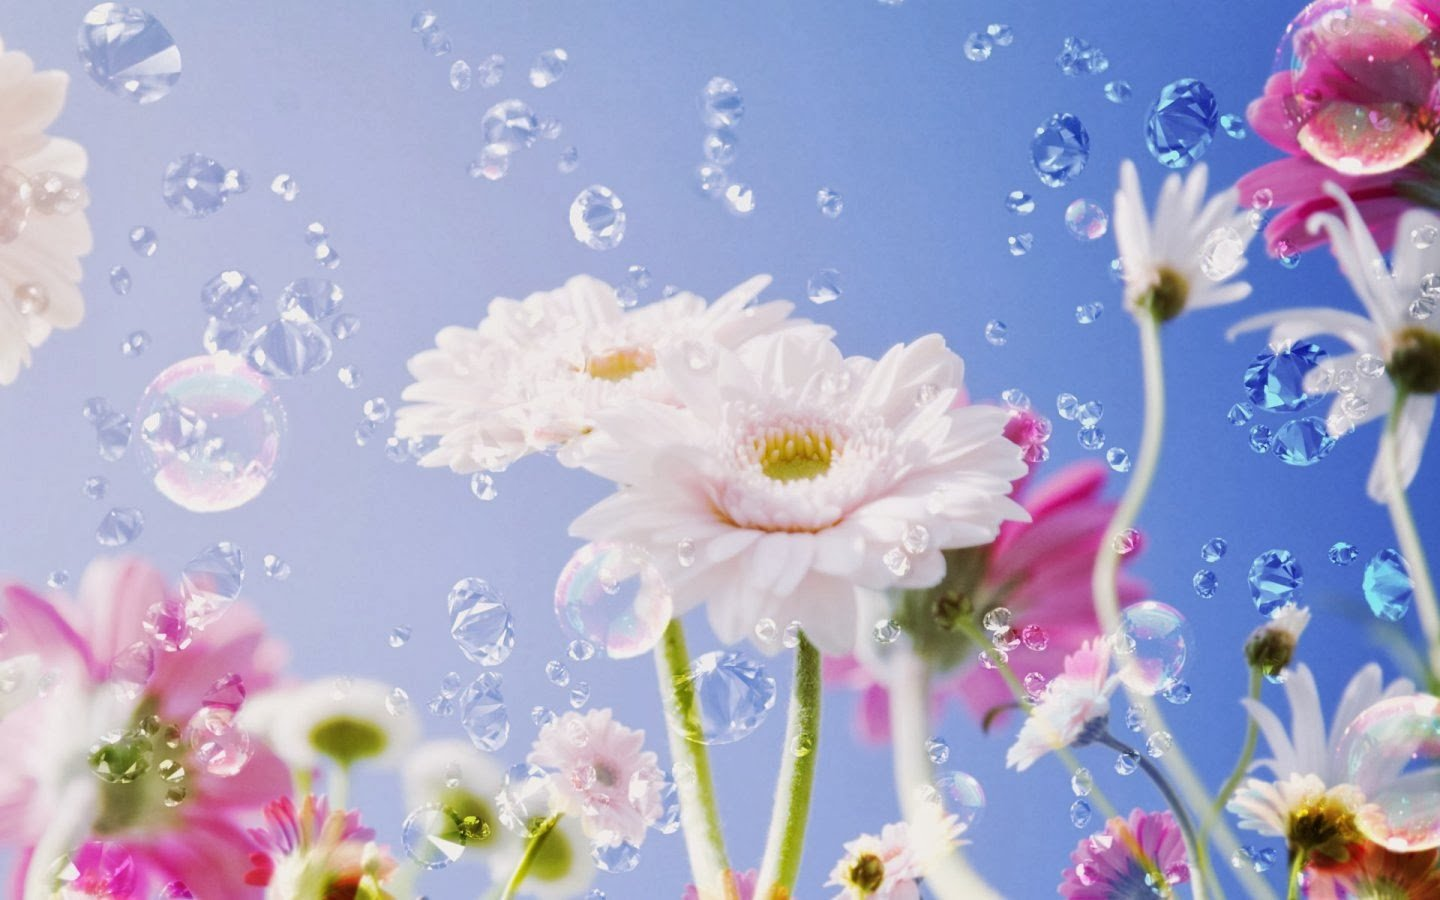 Bright flower wallpaper   beautiful desktop wallpapers 2014 1440x900